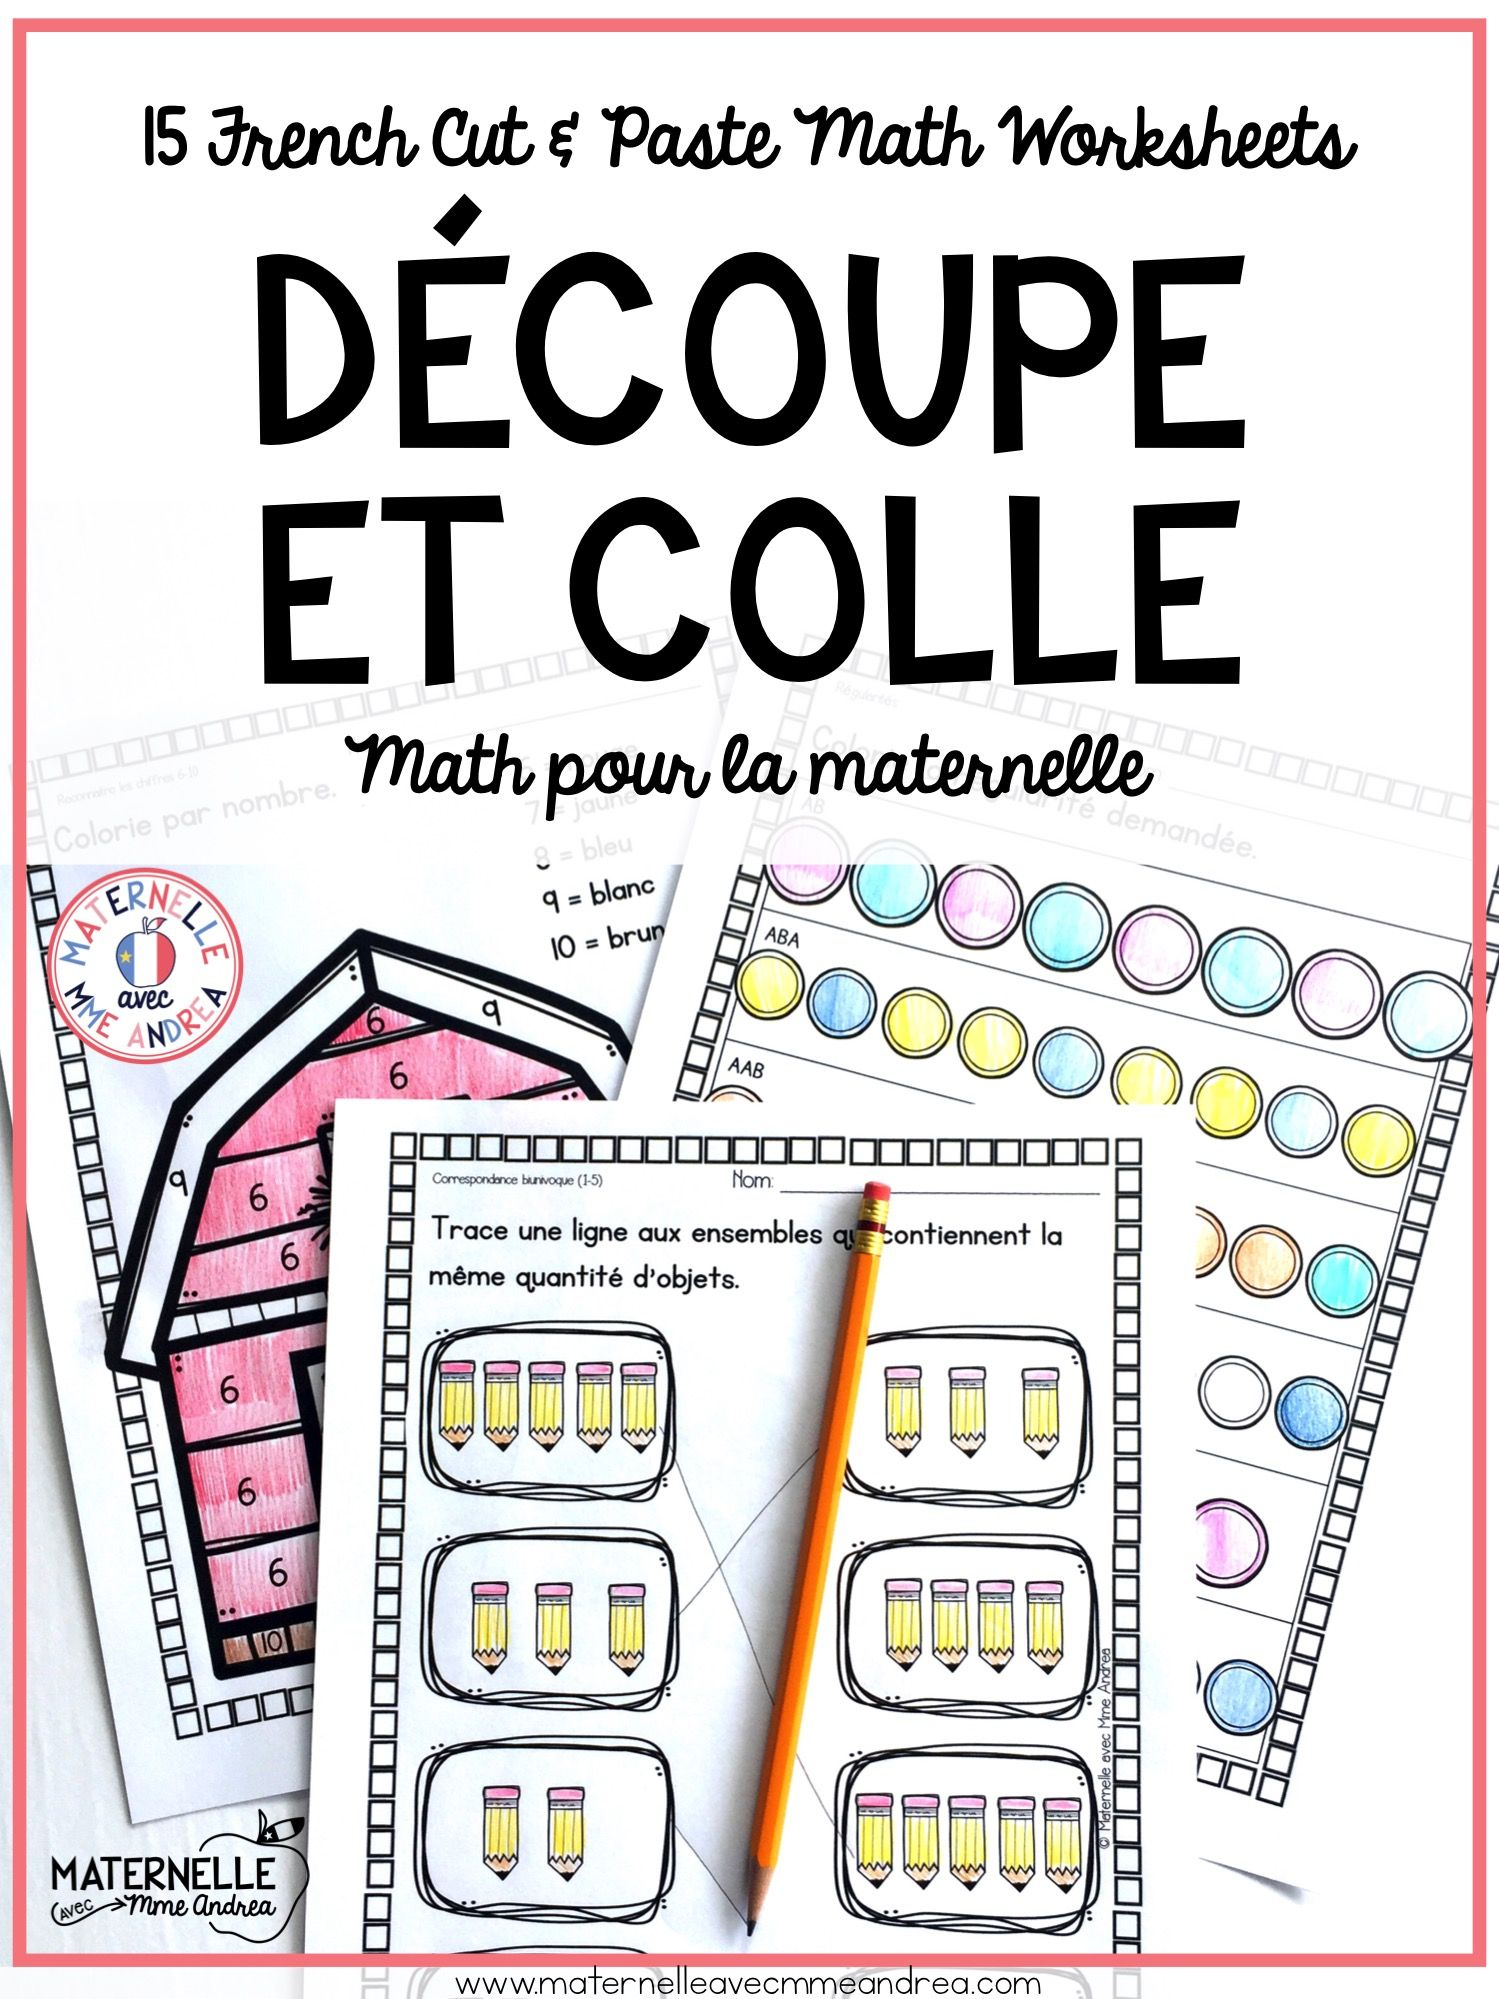 A Perfect Product For Kindergarten Math Here Are 20 Worksheets General Theme Ready To Print And Give To Students Any Math French Lessons Elementary Schools [ 1999 x 1499 Pixel ]